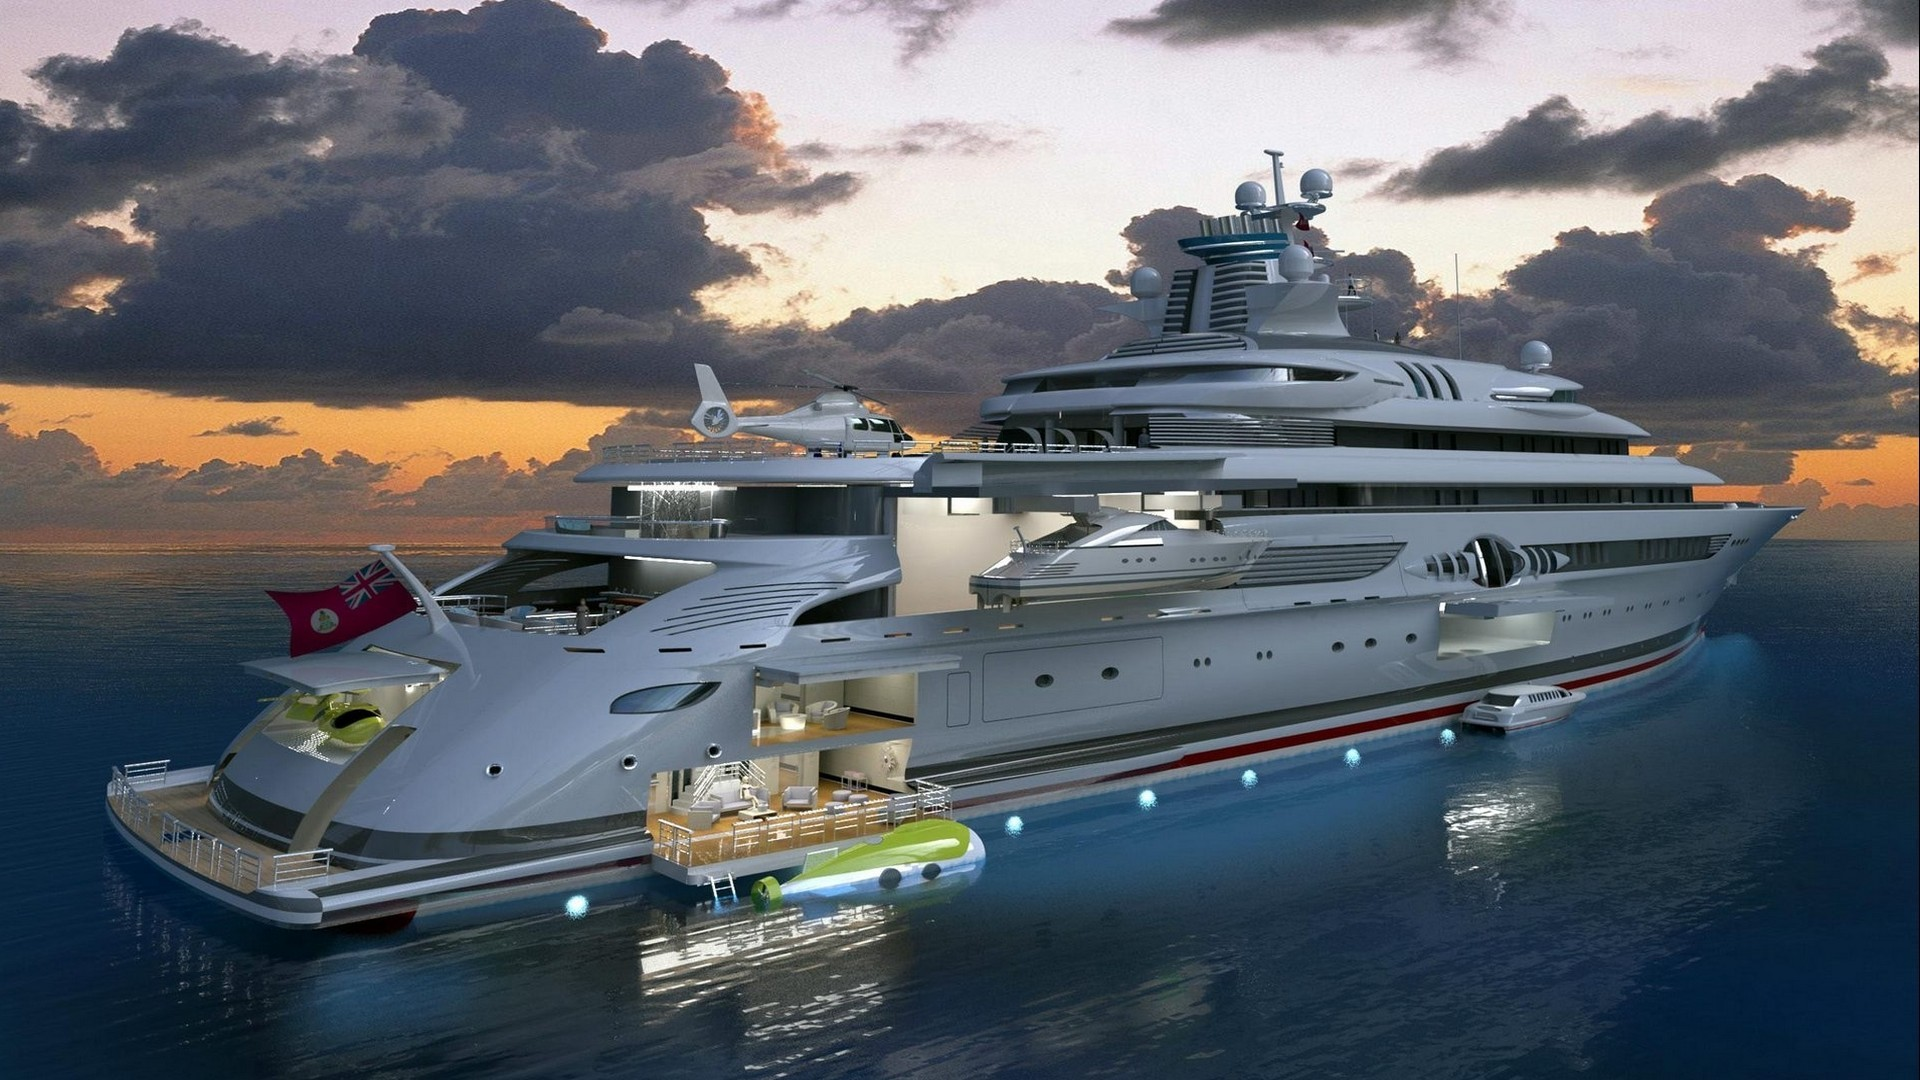 water, clouds, ships, vehicles, yachts - desktop wallpaper